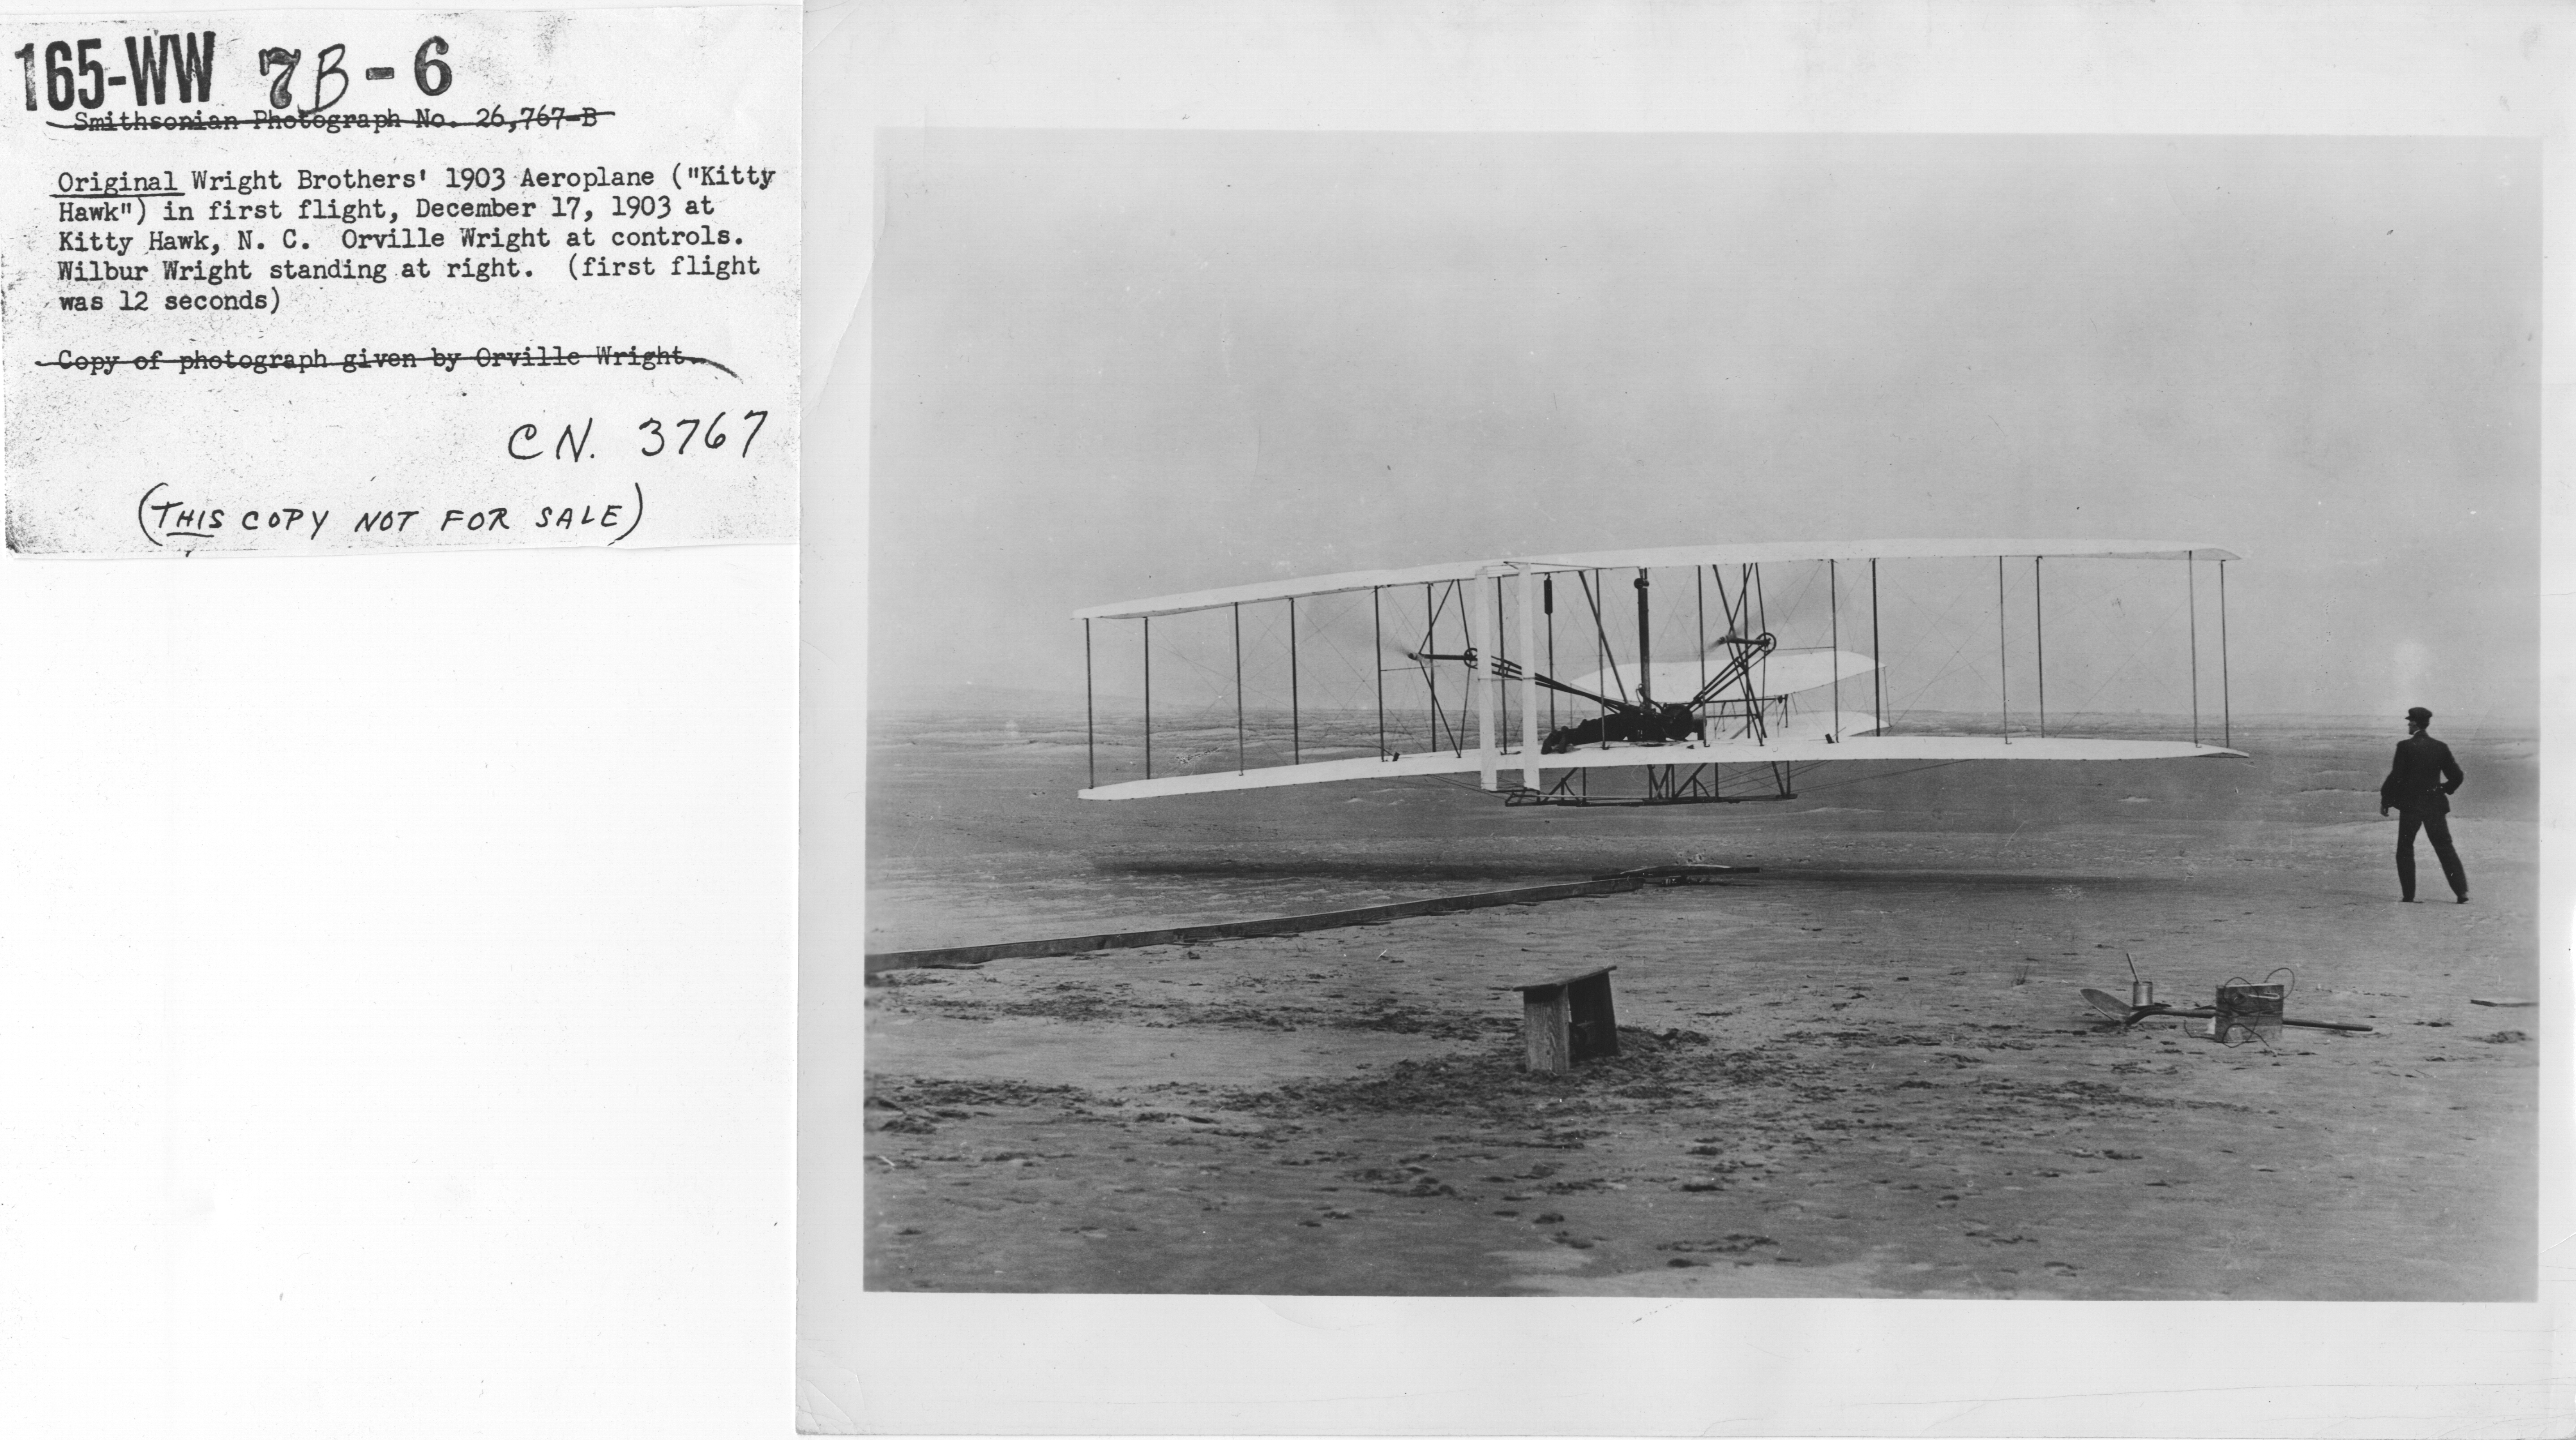 First Flight Kitty Hawk 1903 regarding file:airplanes - historical - wright brothers' 1903 aeroplane